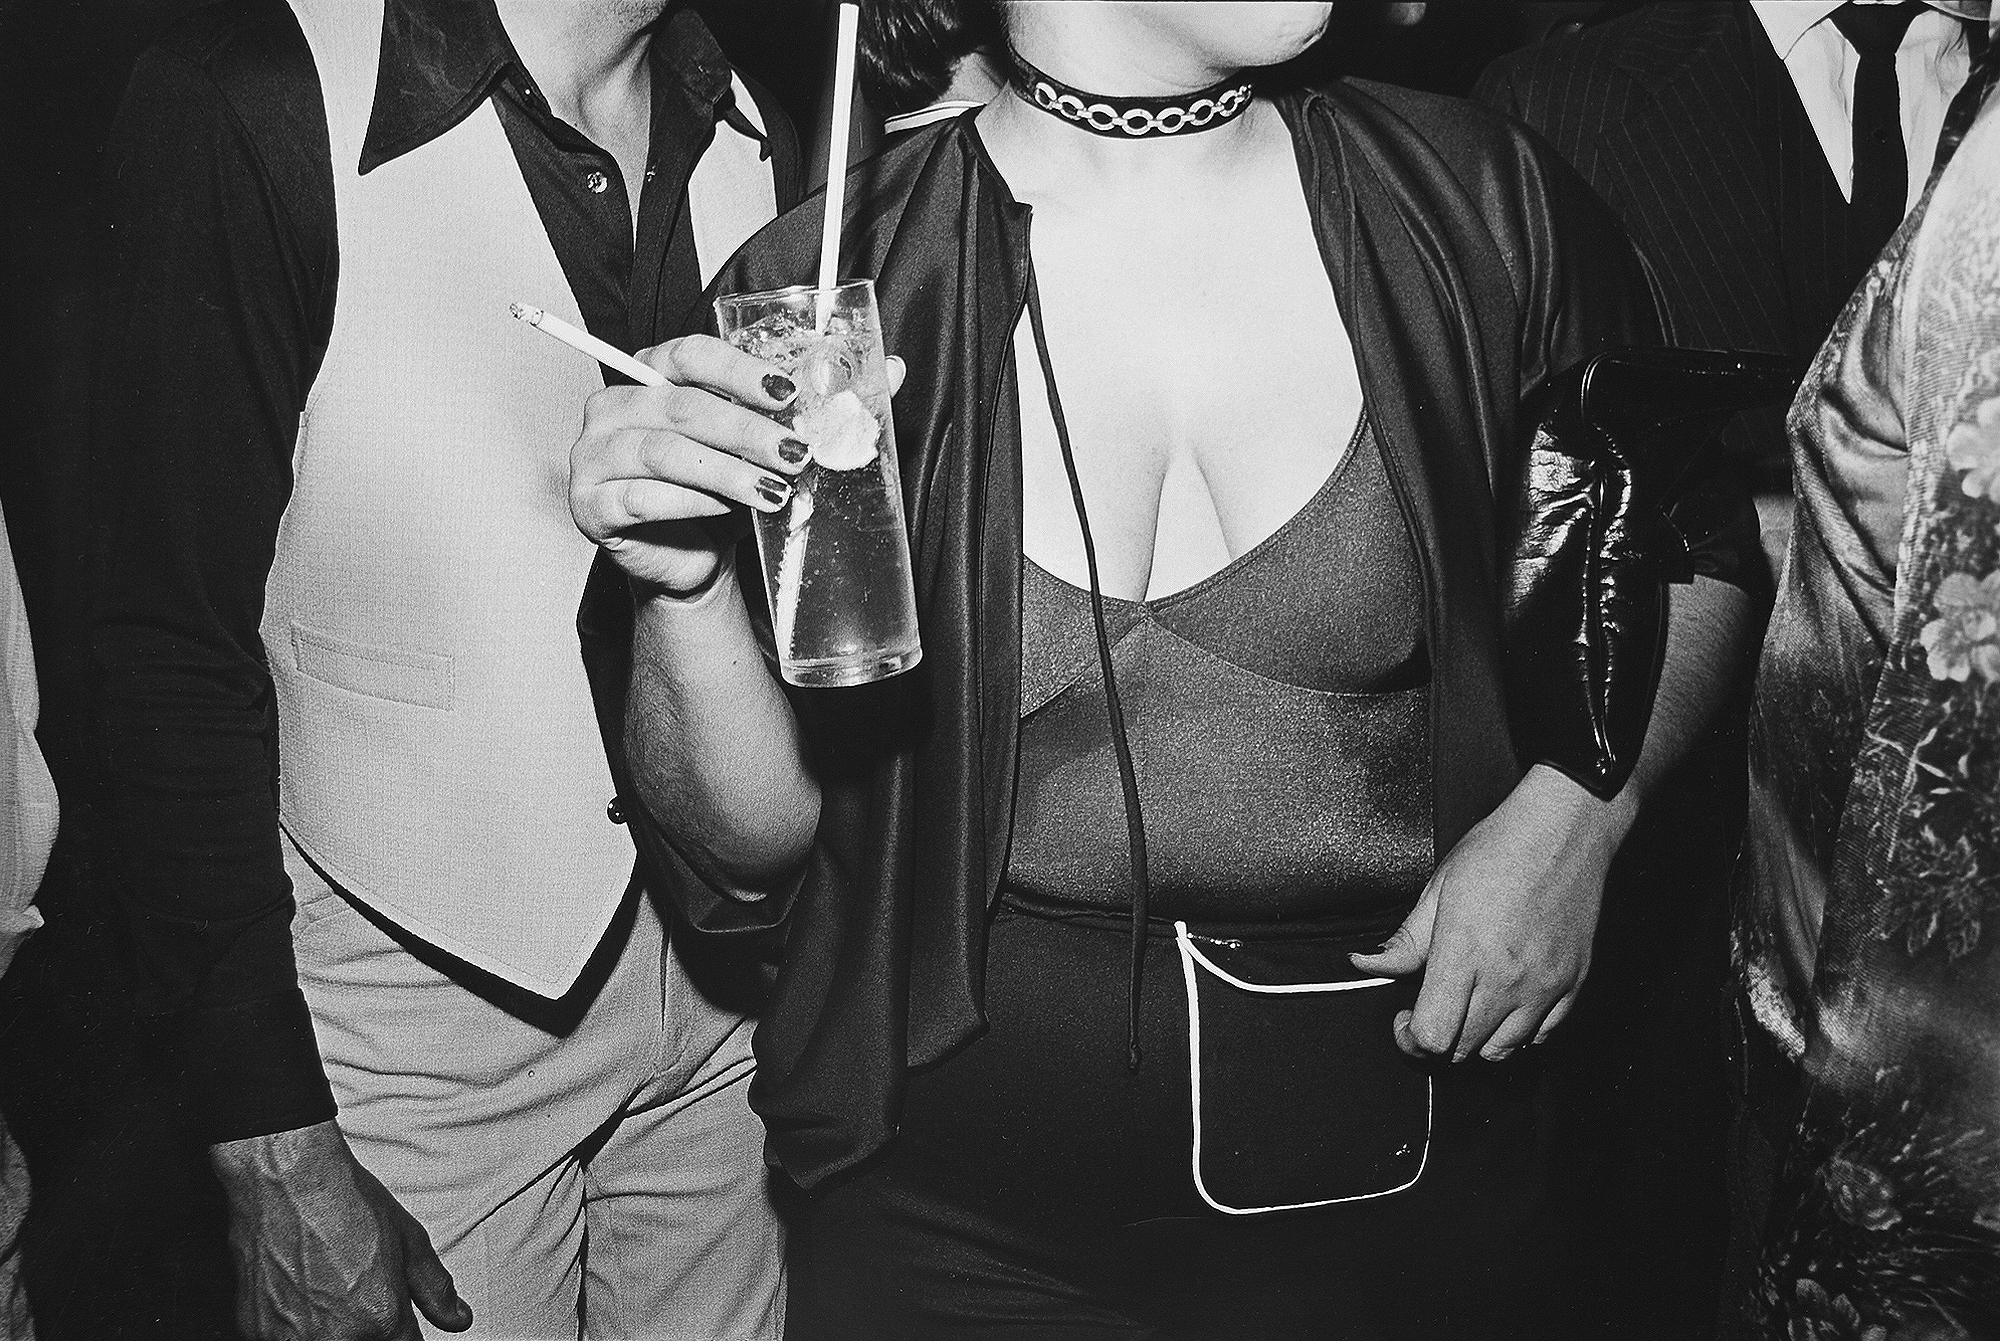 Tony_Ward_photography_early_work_Night_Fever_portfolio_1970's_erotic_dirty_dancing_couples_grinding_choker